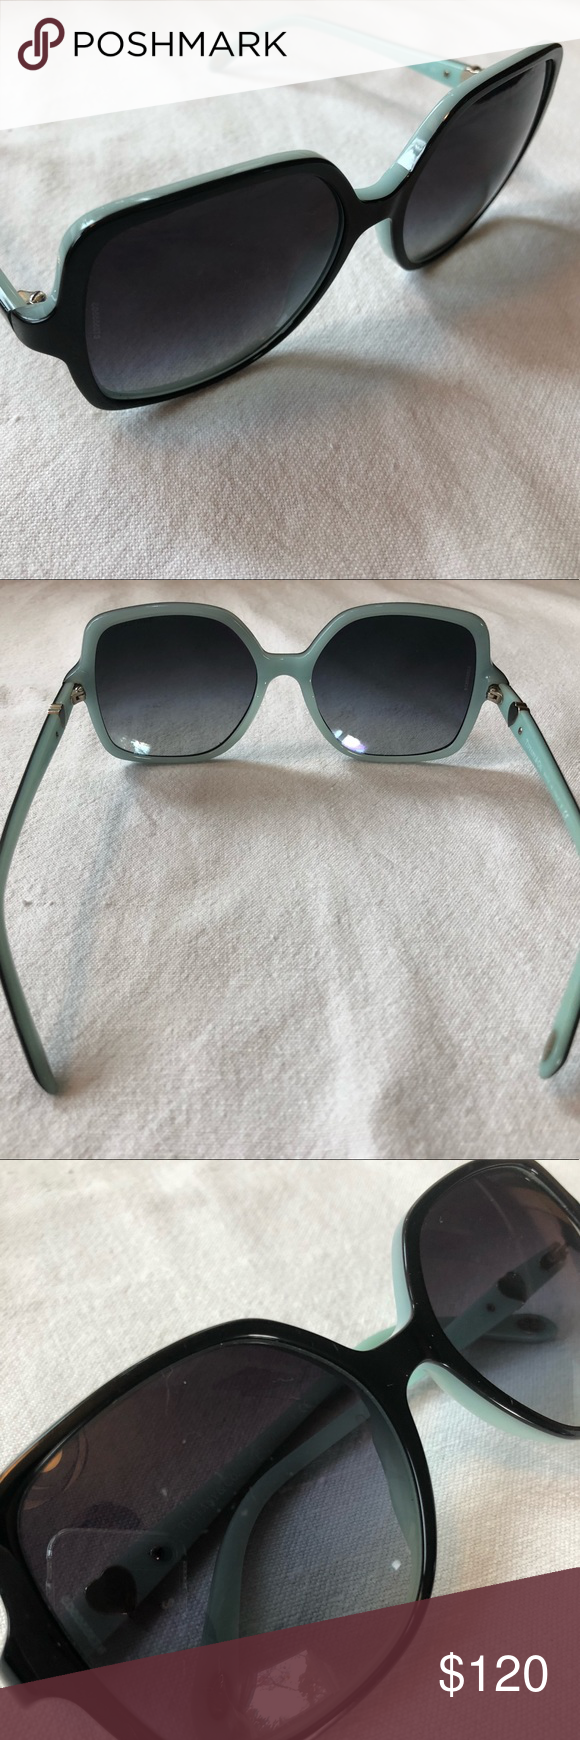 6512edae9d64 Tiffany   Co. Sunglasses Used great condition real Tiffany   Co. Sunglasses  Style  TF 4050 8055 3C Slight minor scratches on lenses